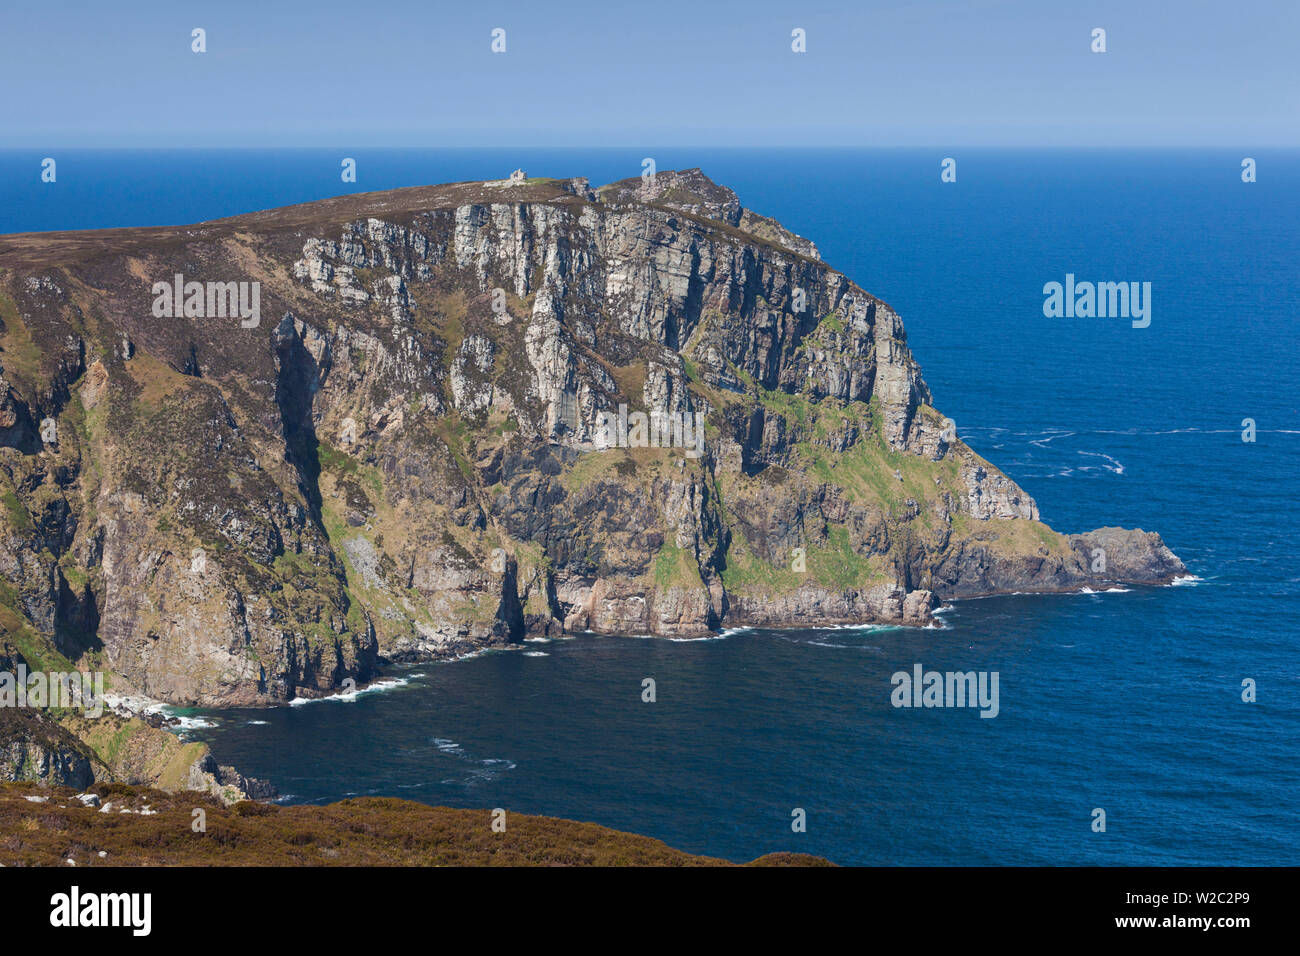 Ireland, County Donegal, Dunfanaghy, Horn Head - Stock Image